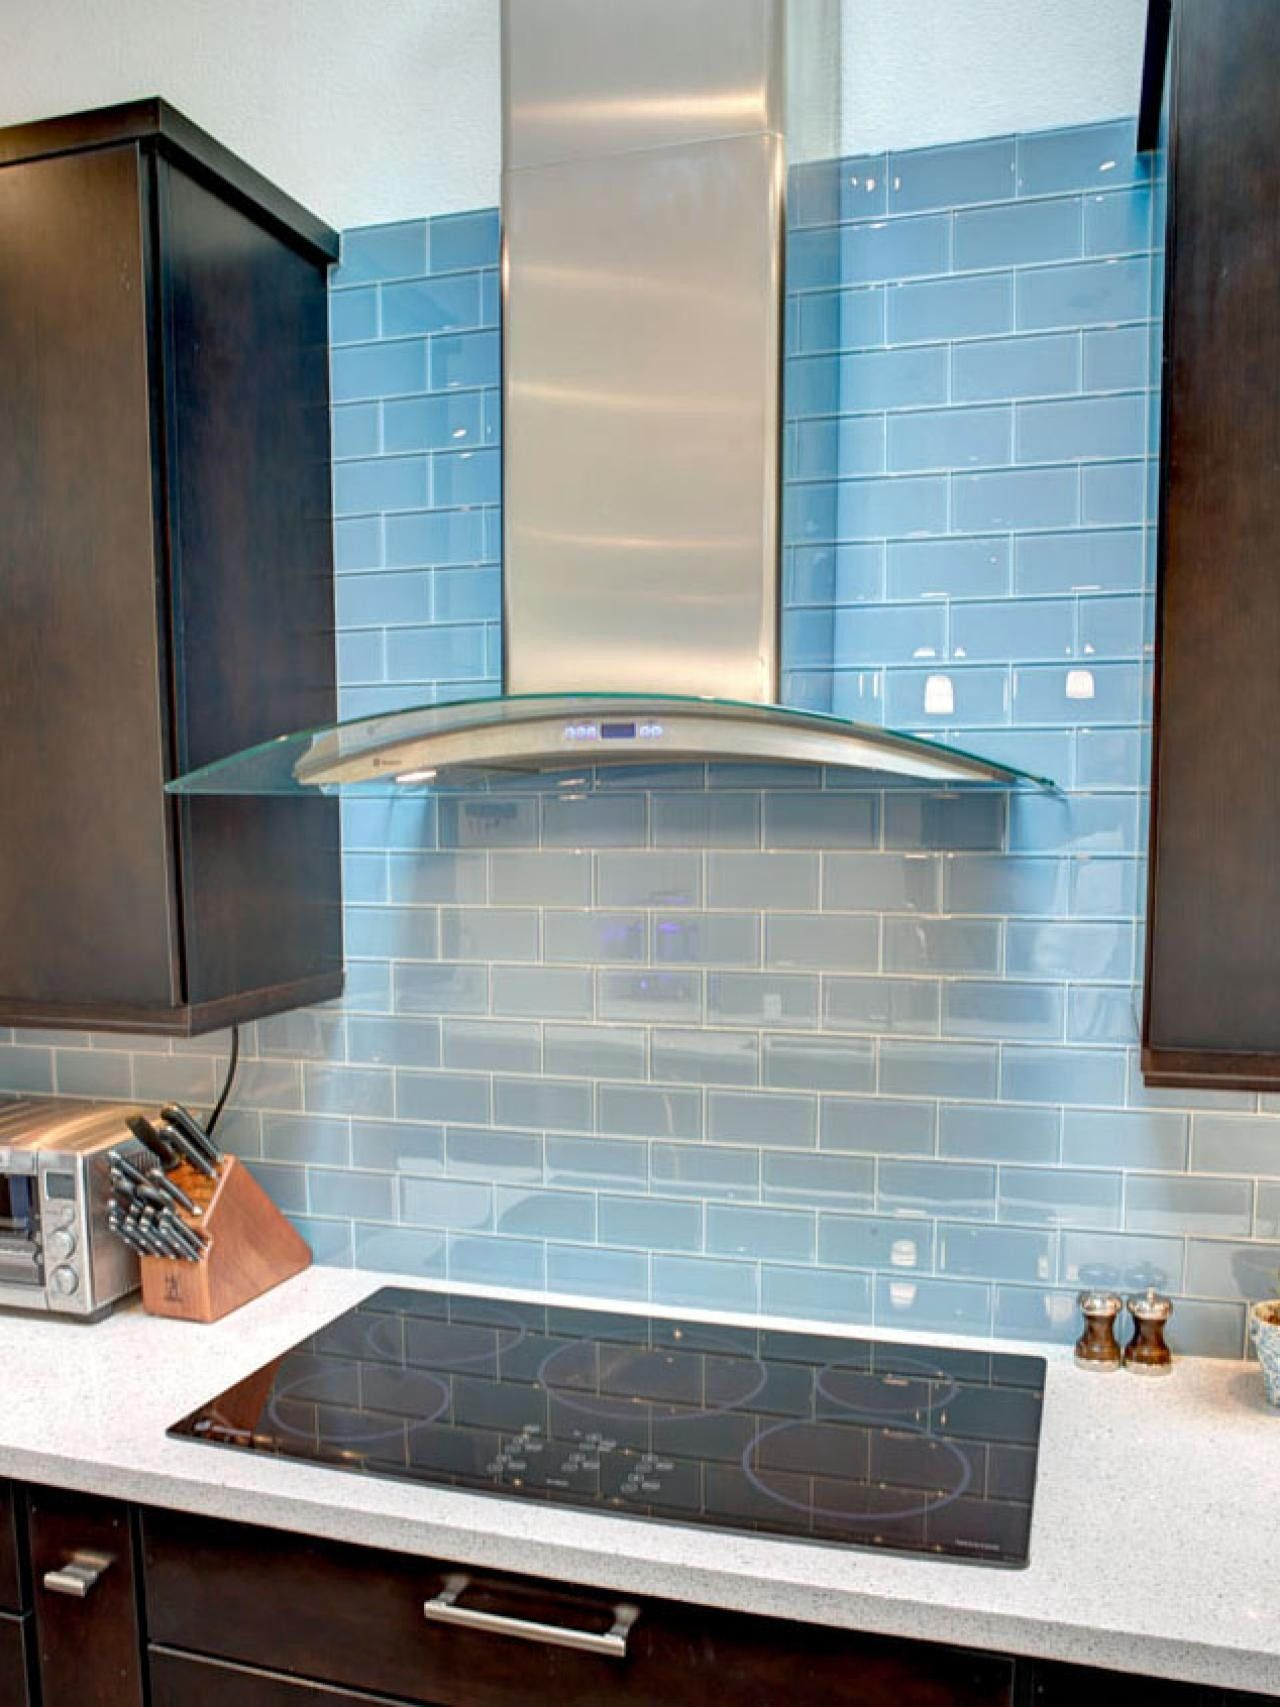 Backsplash Kitchen Modern Tile Backsplash Behind Range Hood  Kitchen Idea  Kitchen Hoods